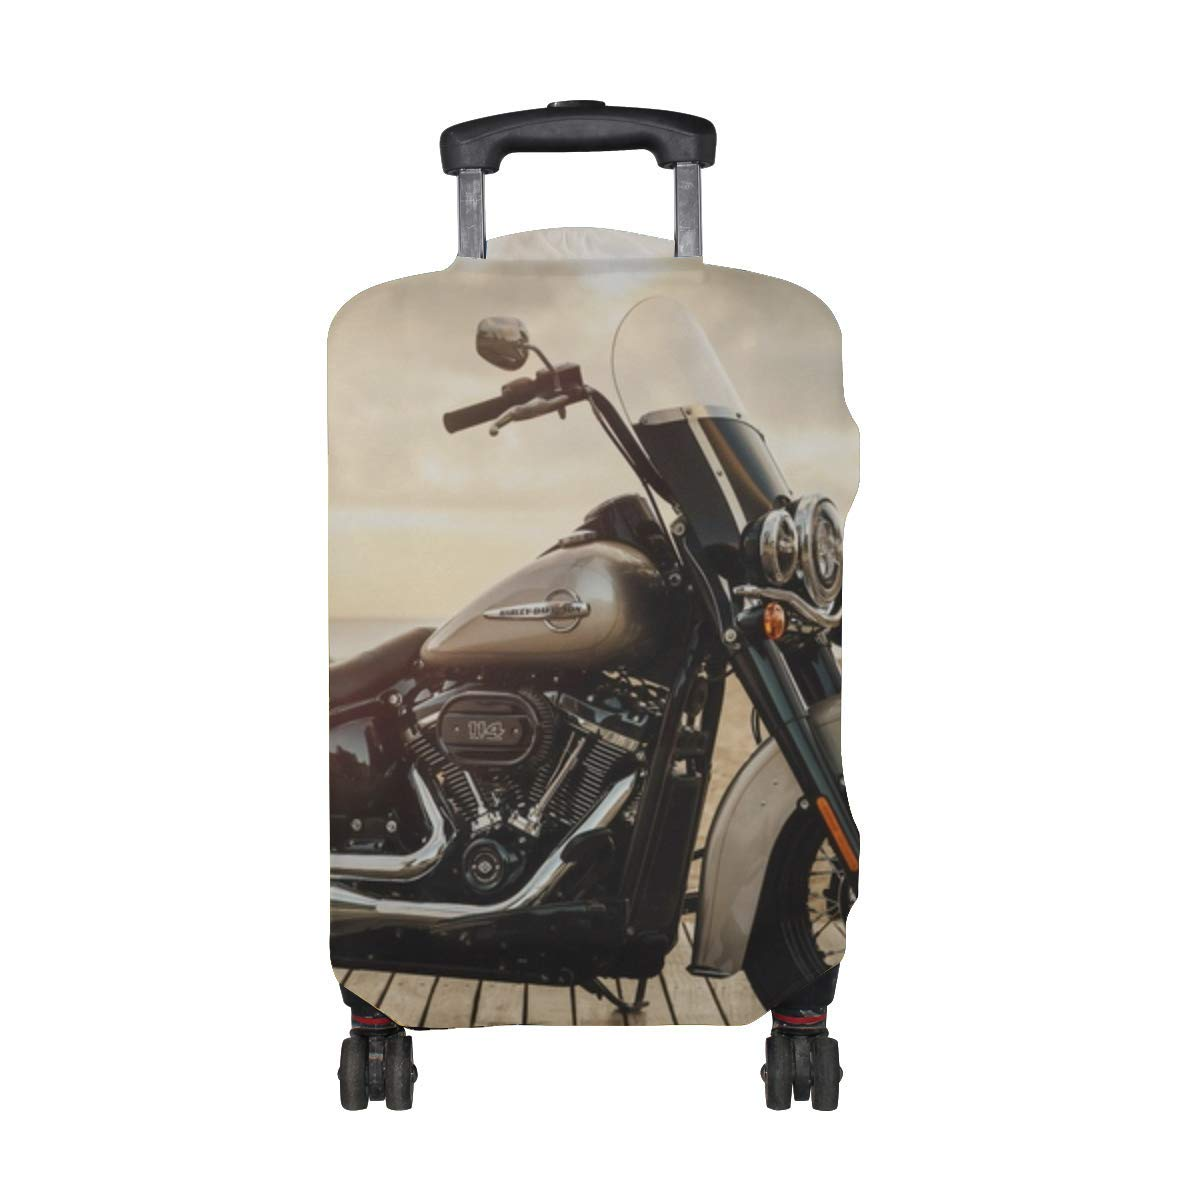 Harleydavidson Motorcycle Bike Pattern Print Travel Luggage Protector Baggage Suitcase Cover Fits 18-21 Inch Luggage